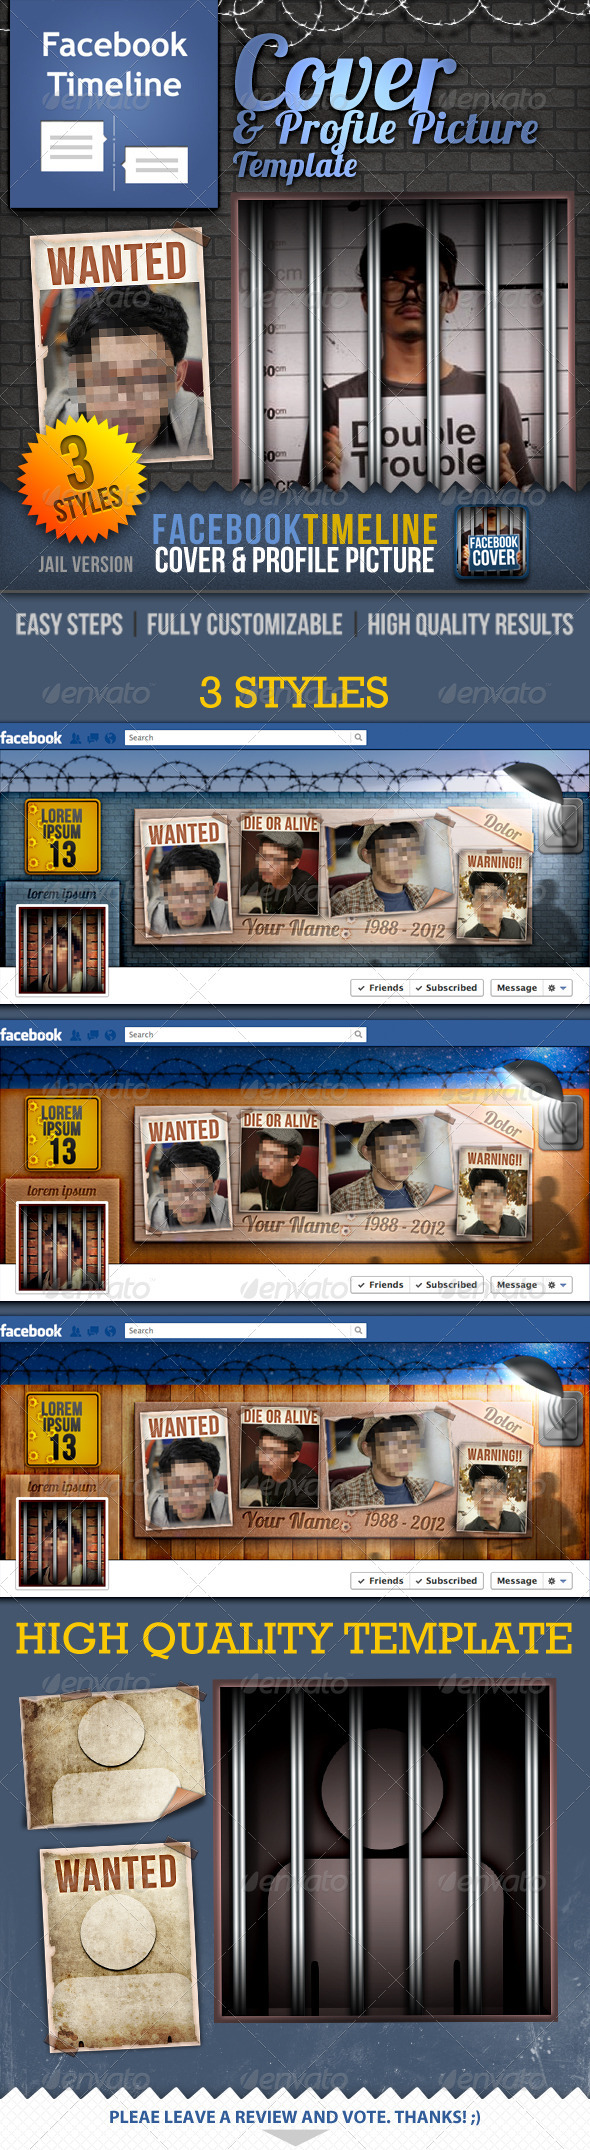 Facebook Timeline Cover & Profile Picture: Jail - Facebook Timeline Covers Social Media